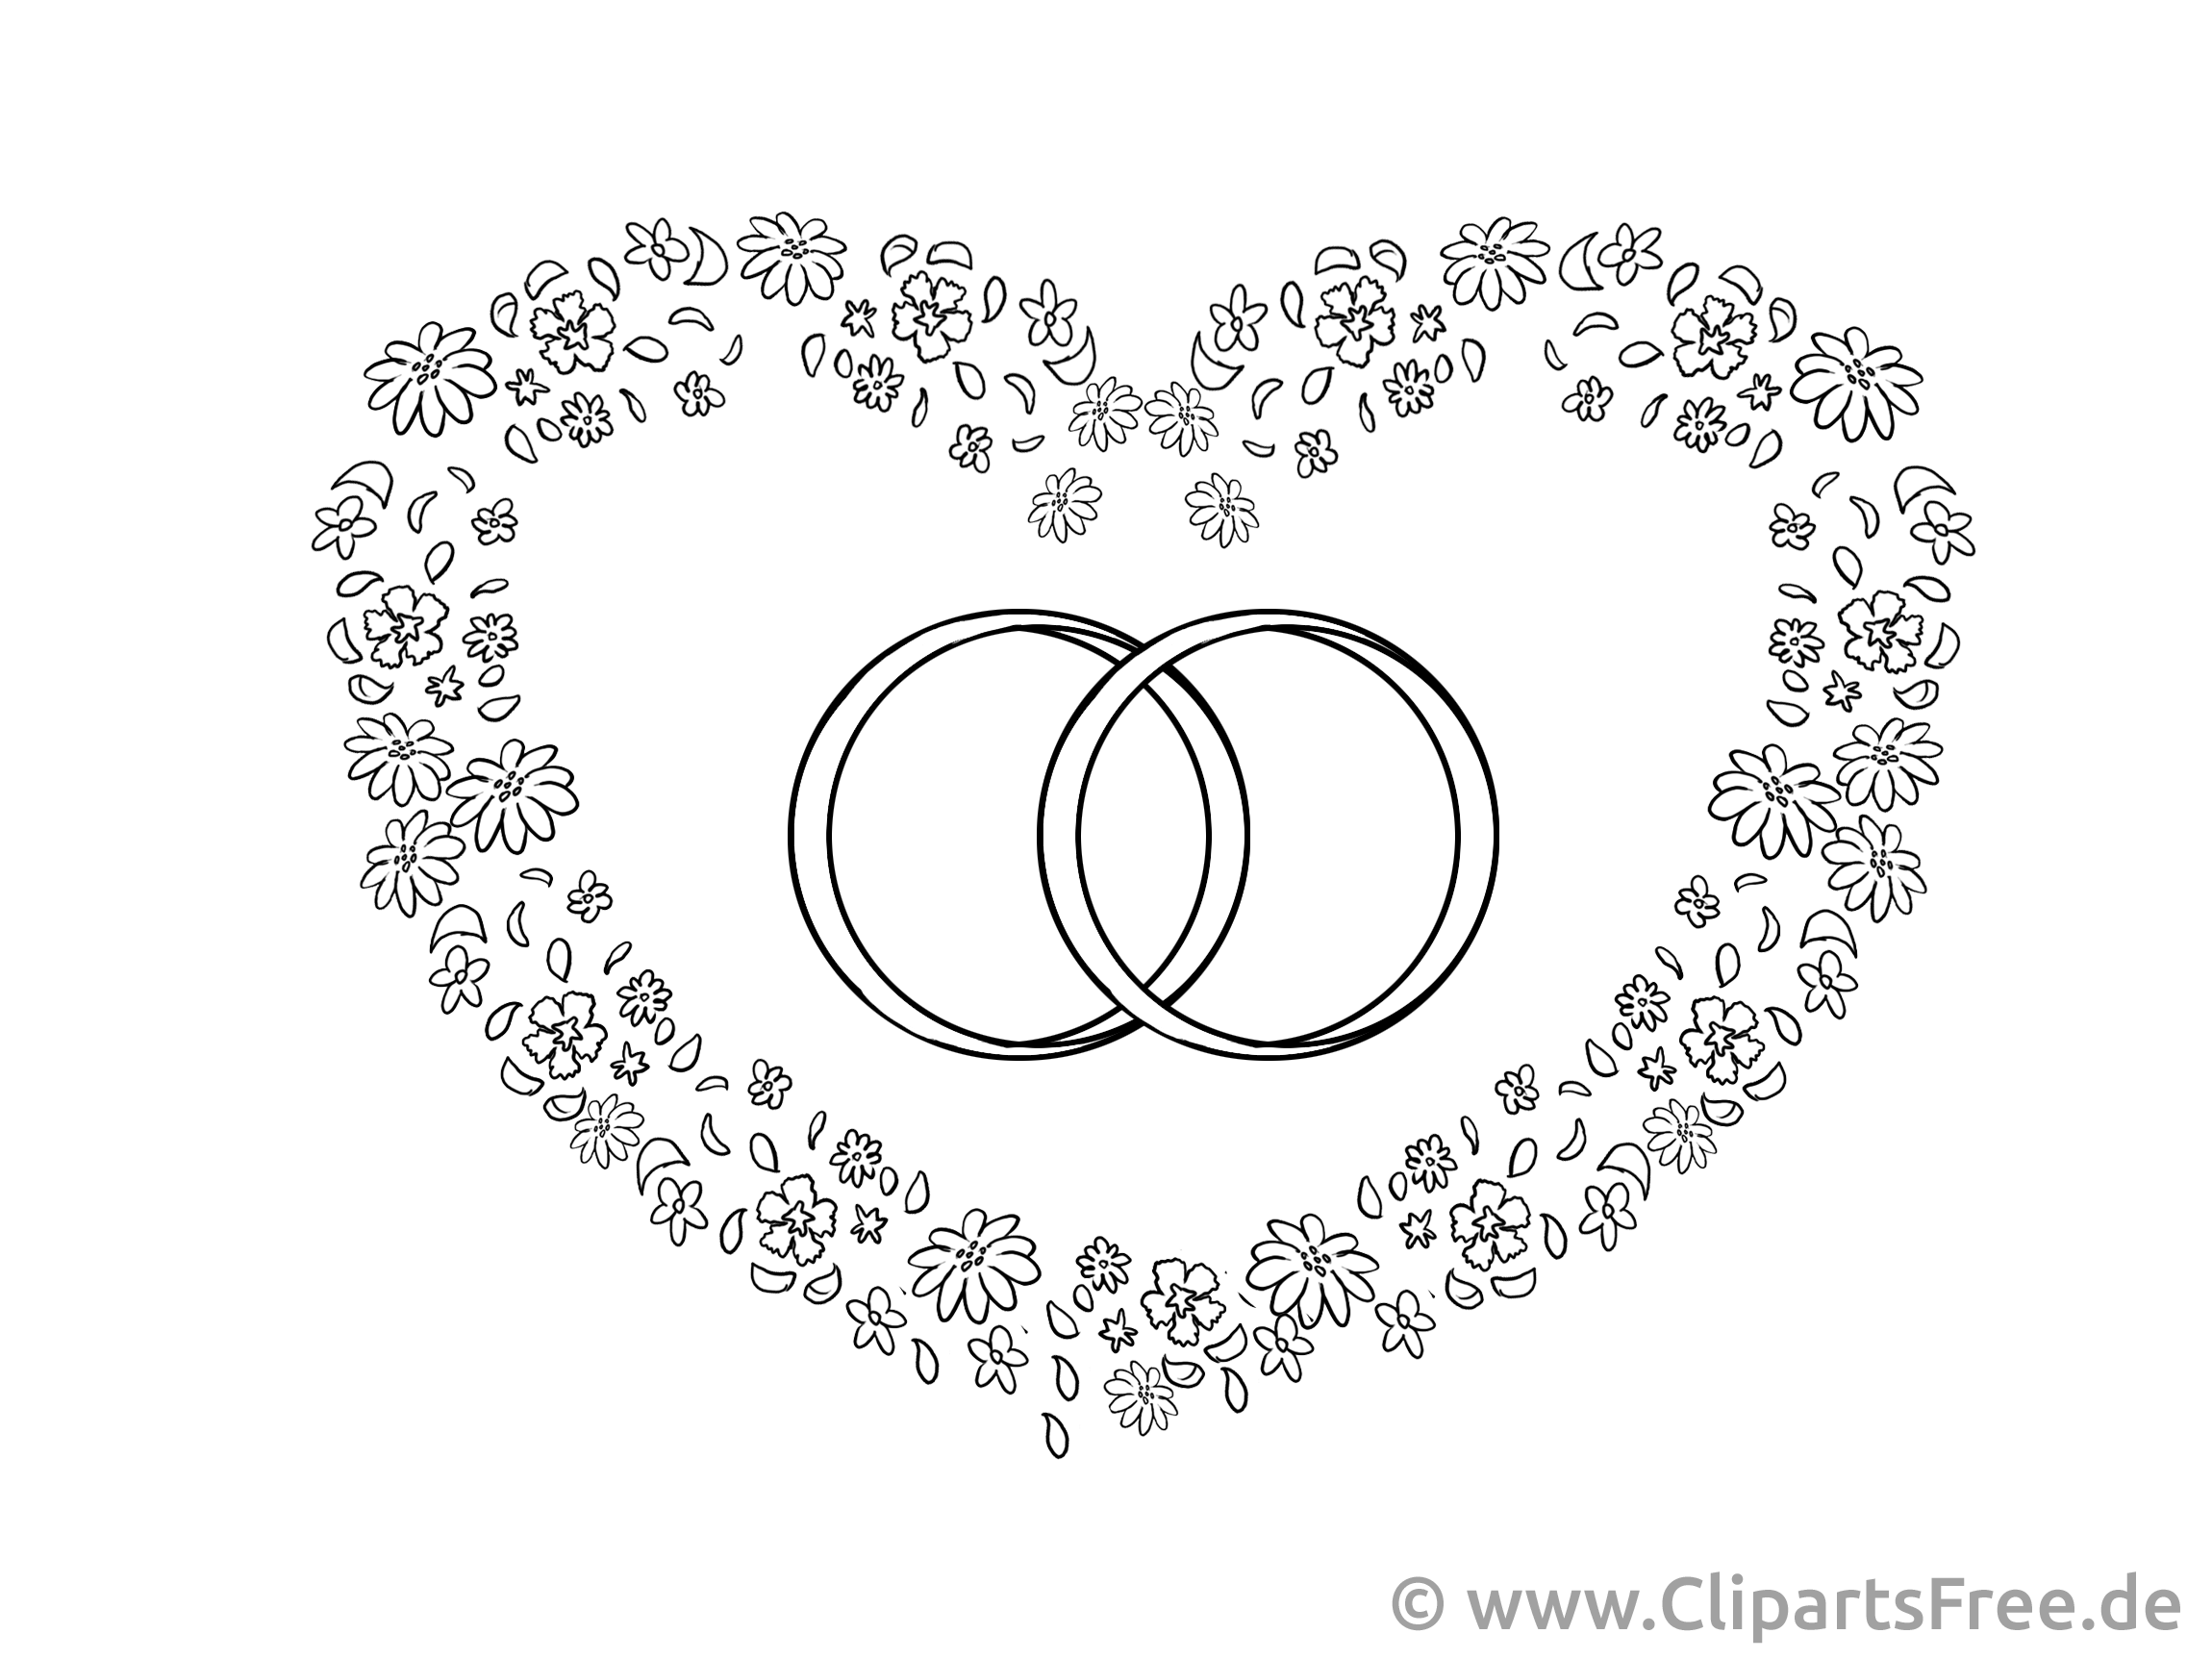 Library Of Clip Downloads Hochzeit Kostenlos Downloaden Png Files